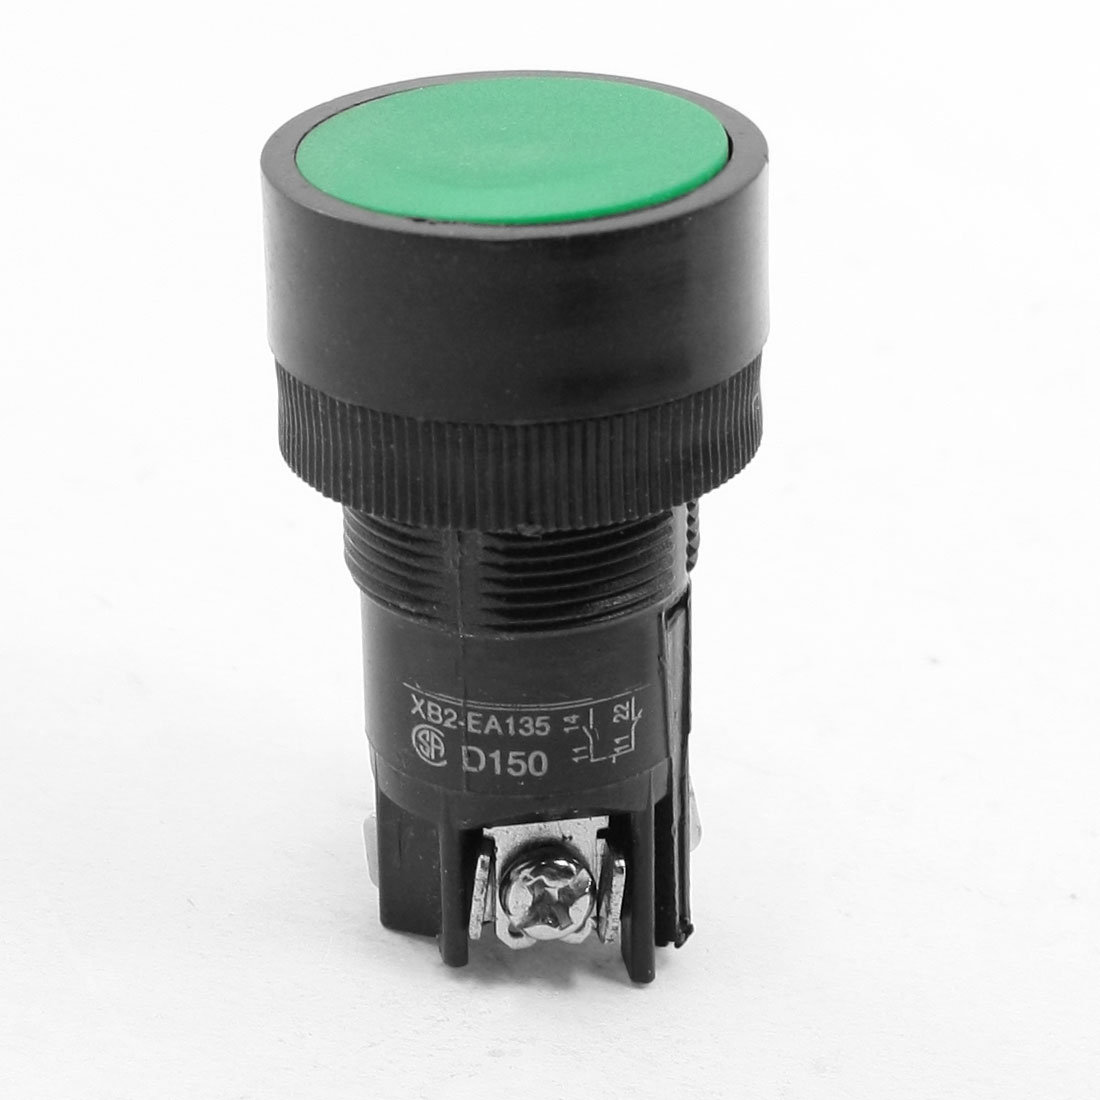 Green Top SPDT Non Locking Momentary 3 Terminals Button Switch 220-250V Volt 3A